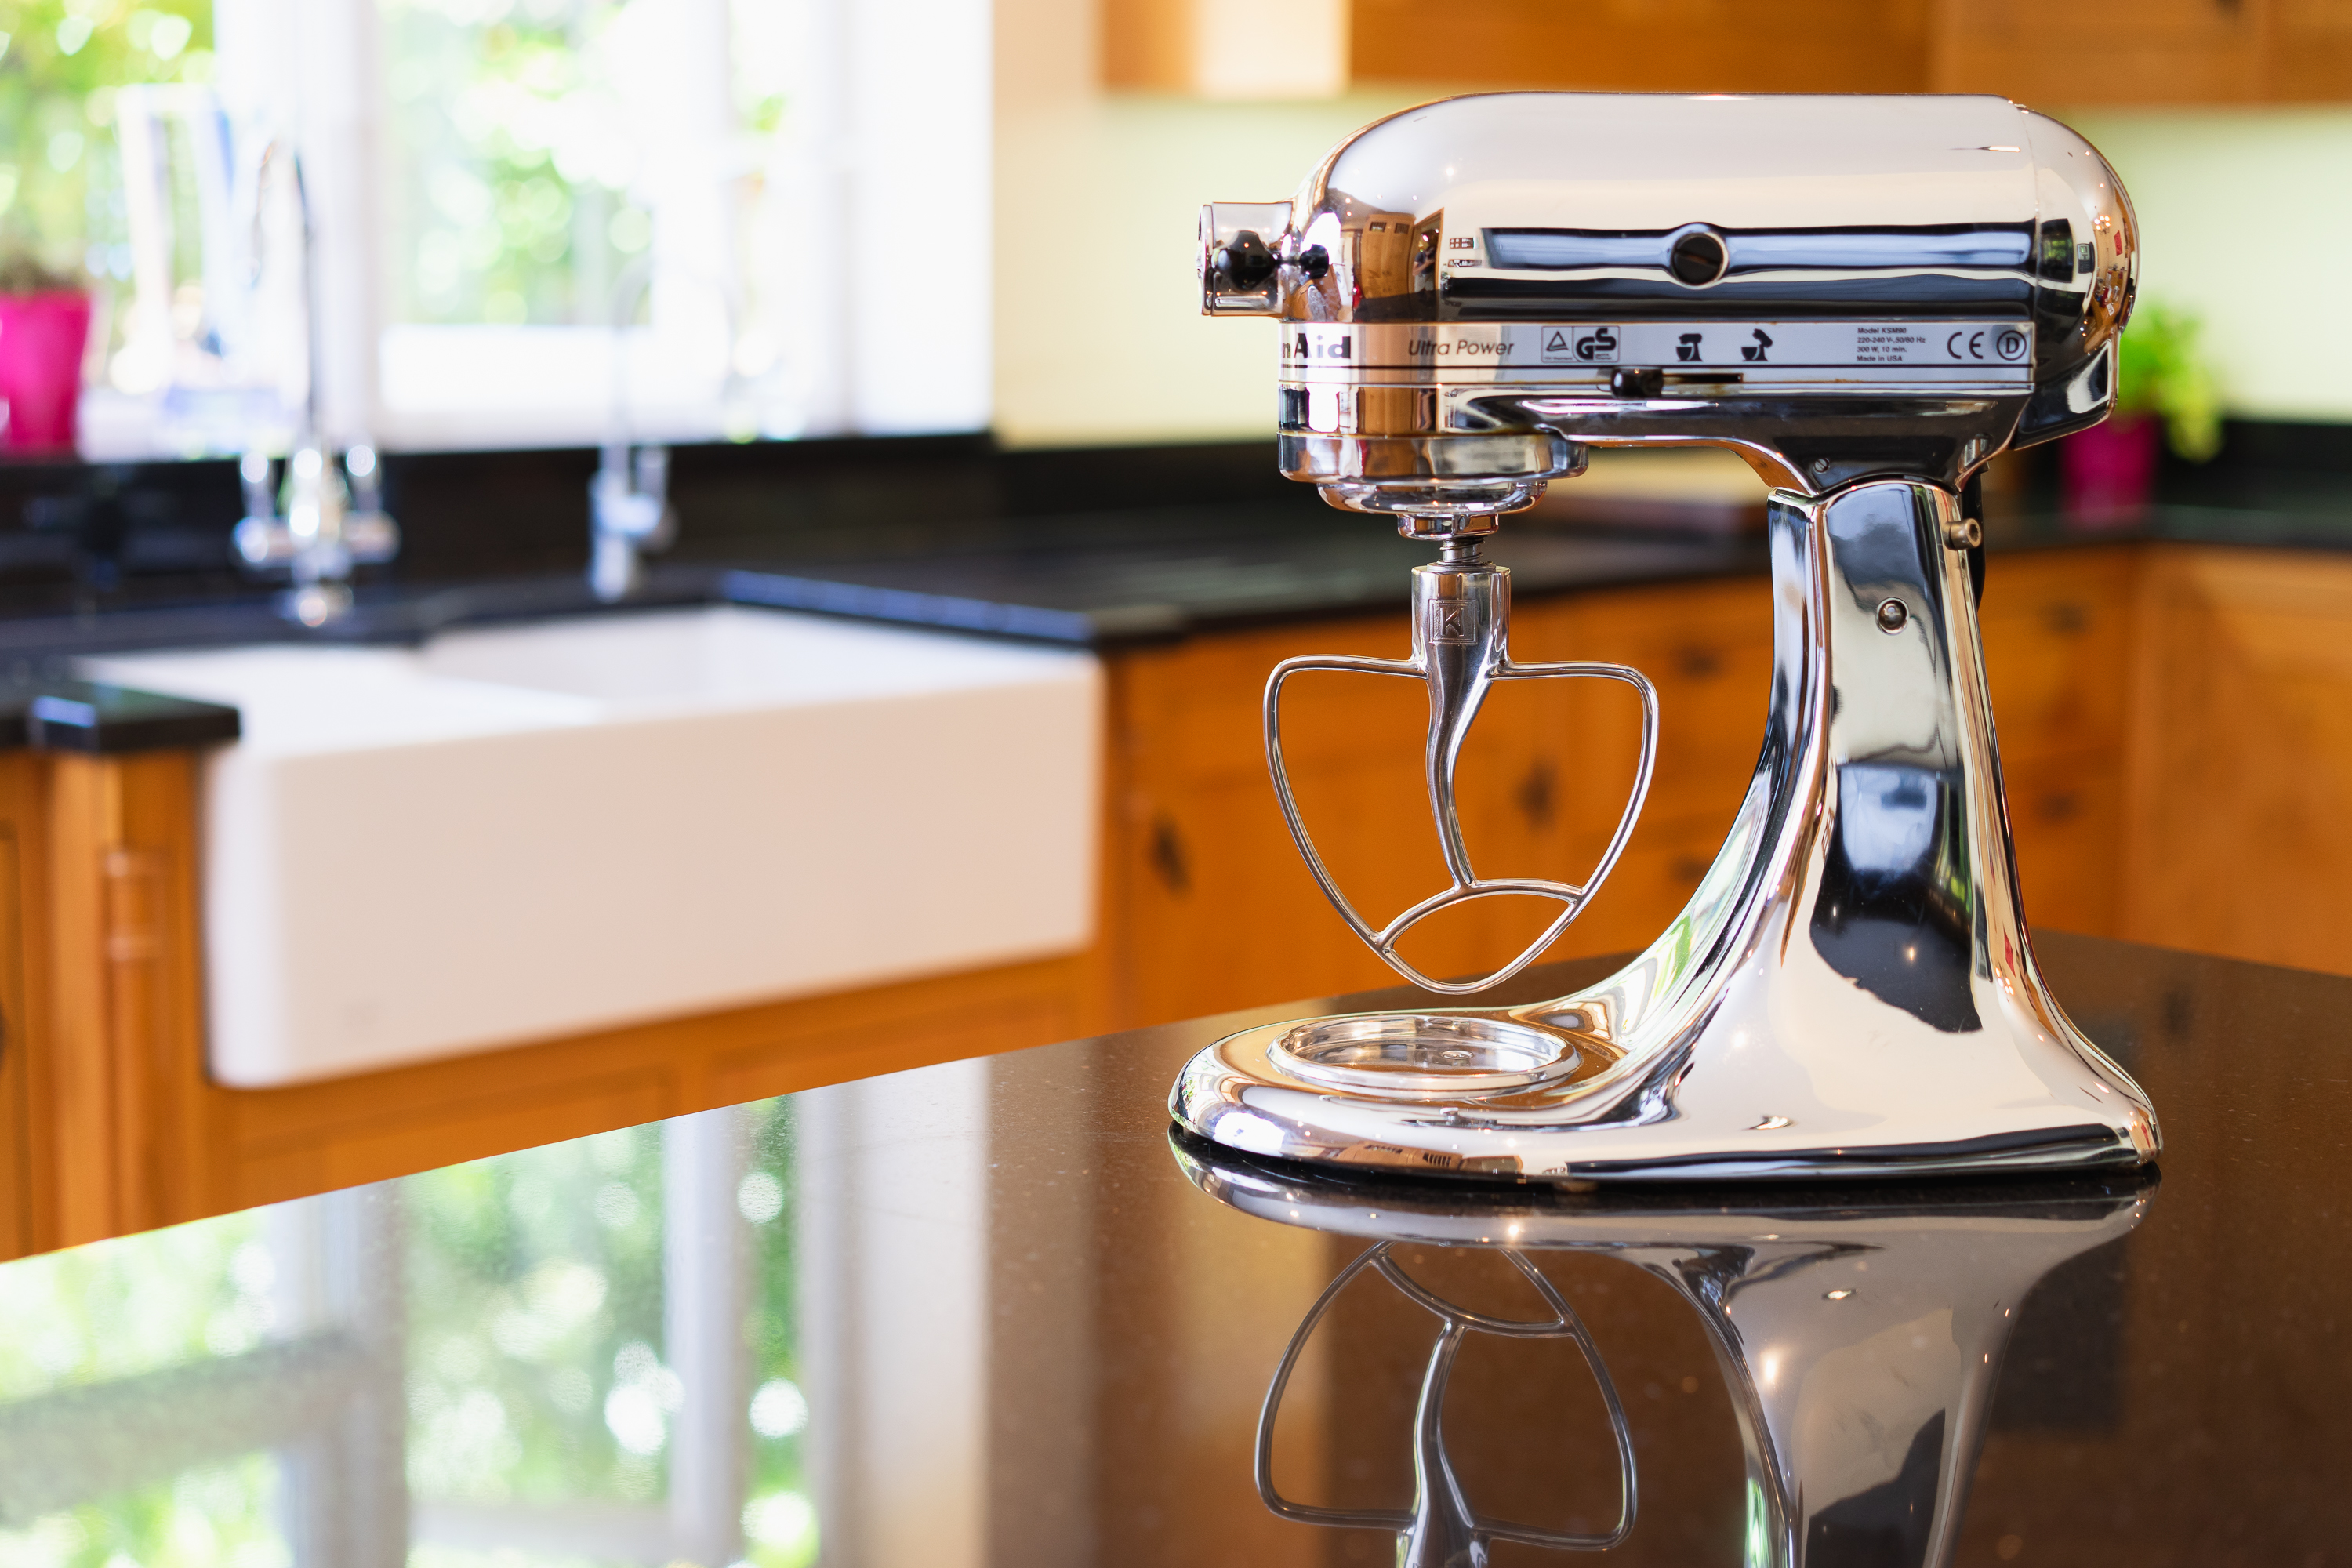 Happy accident launches company that sells KitchenAid parts ...